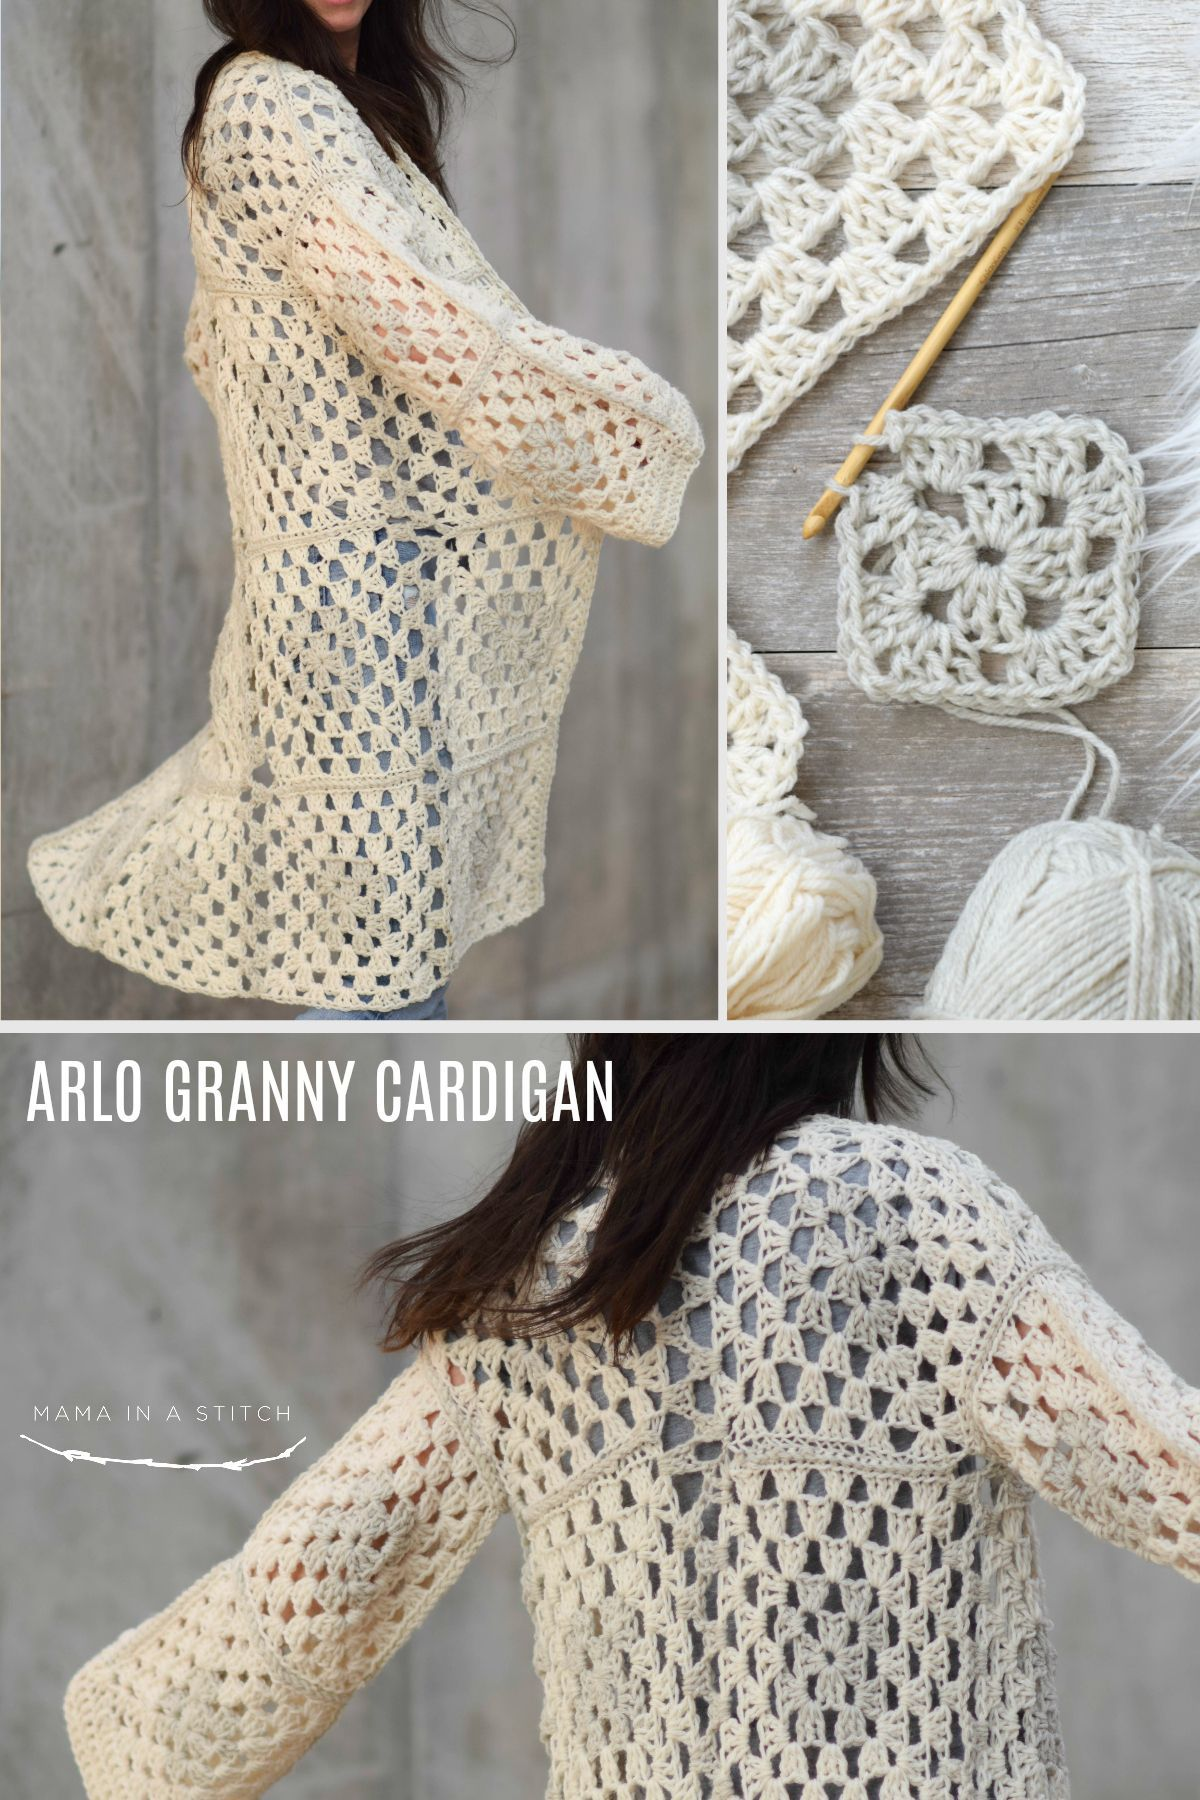 Arlo Granny Square Crocheted Cardigan Pattern (Mama In A Stitch) #grannysquareponcho